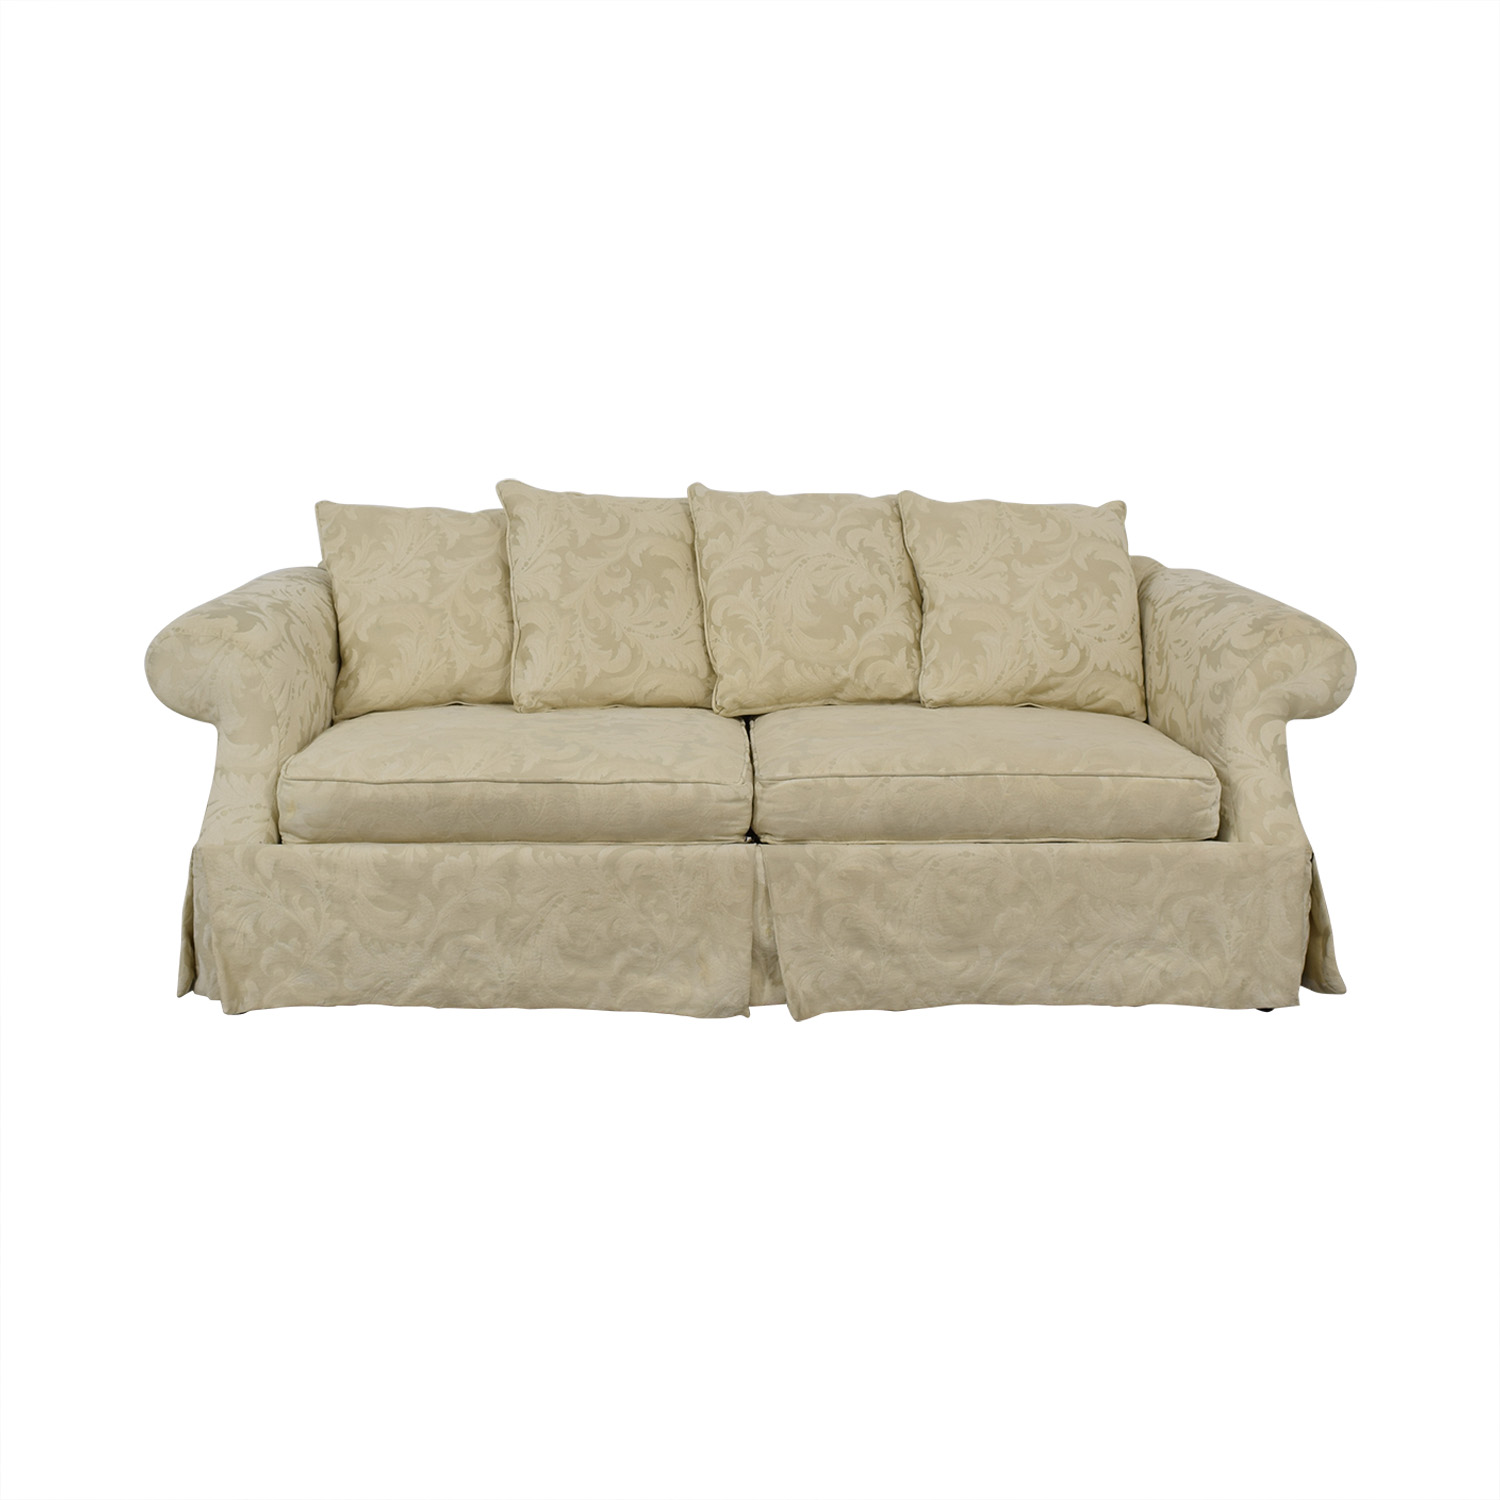 Rowe Furniture Rowe Furniture Roll Arm Sofa second hand